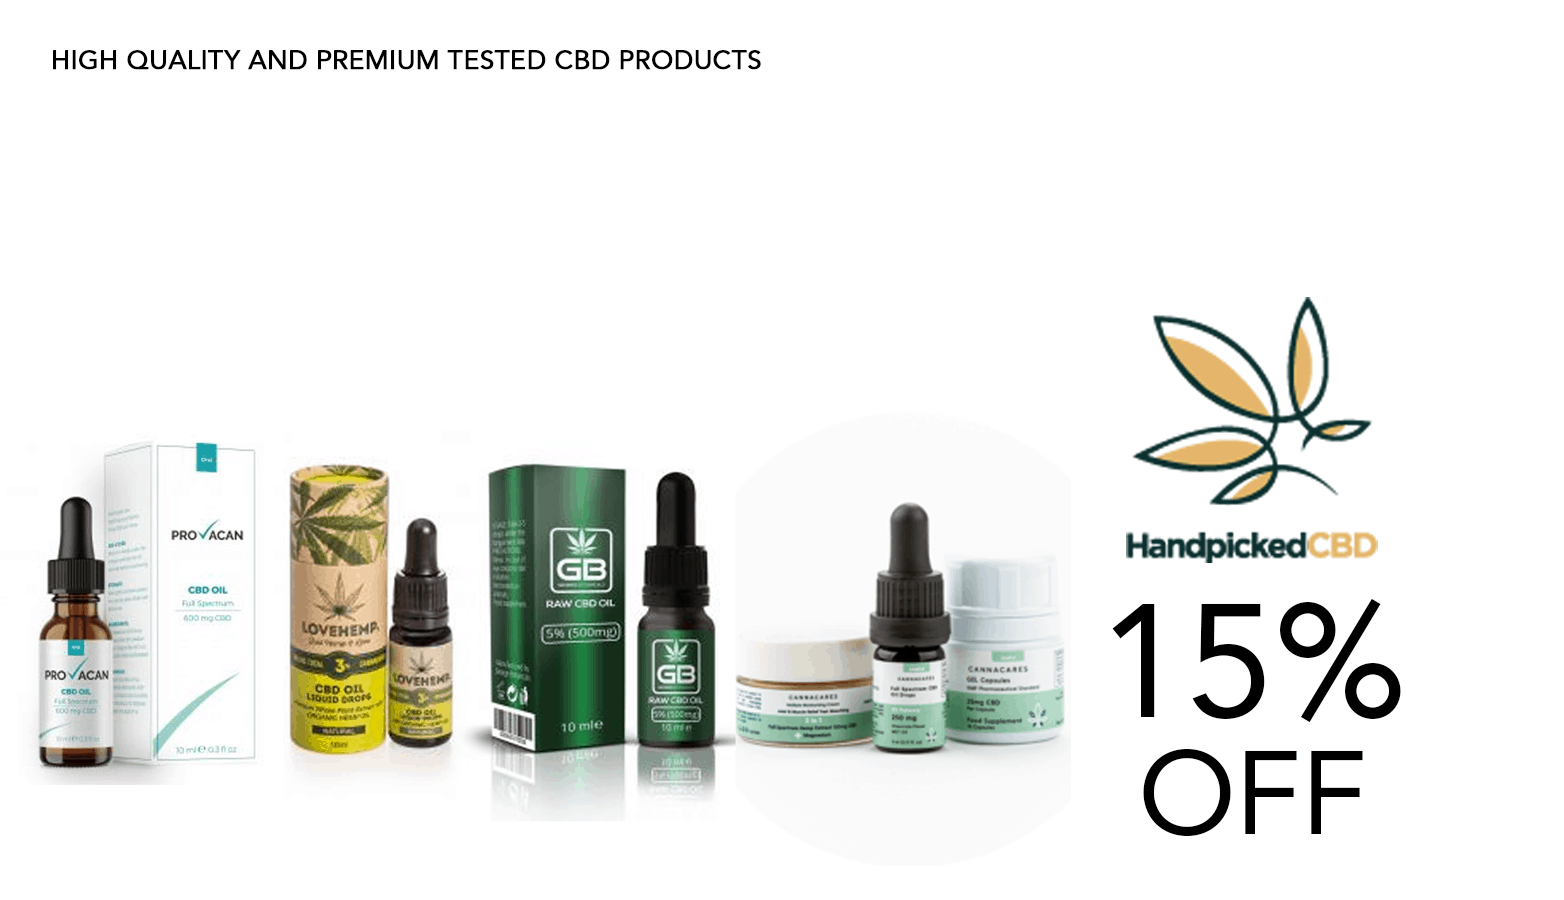 Handpicked CBD Coupon Code Promo Website